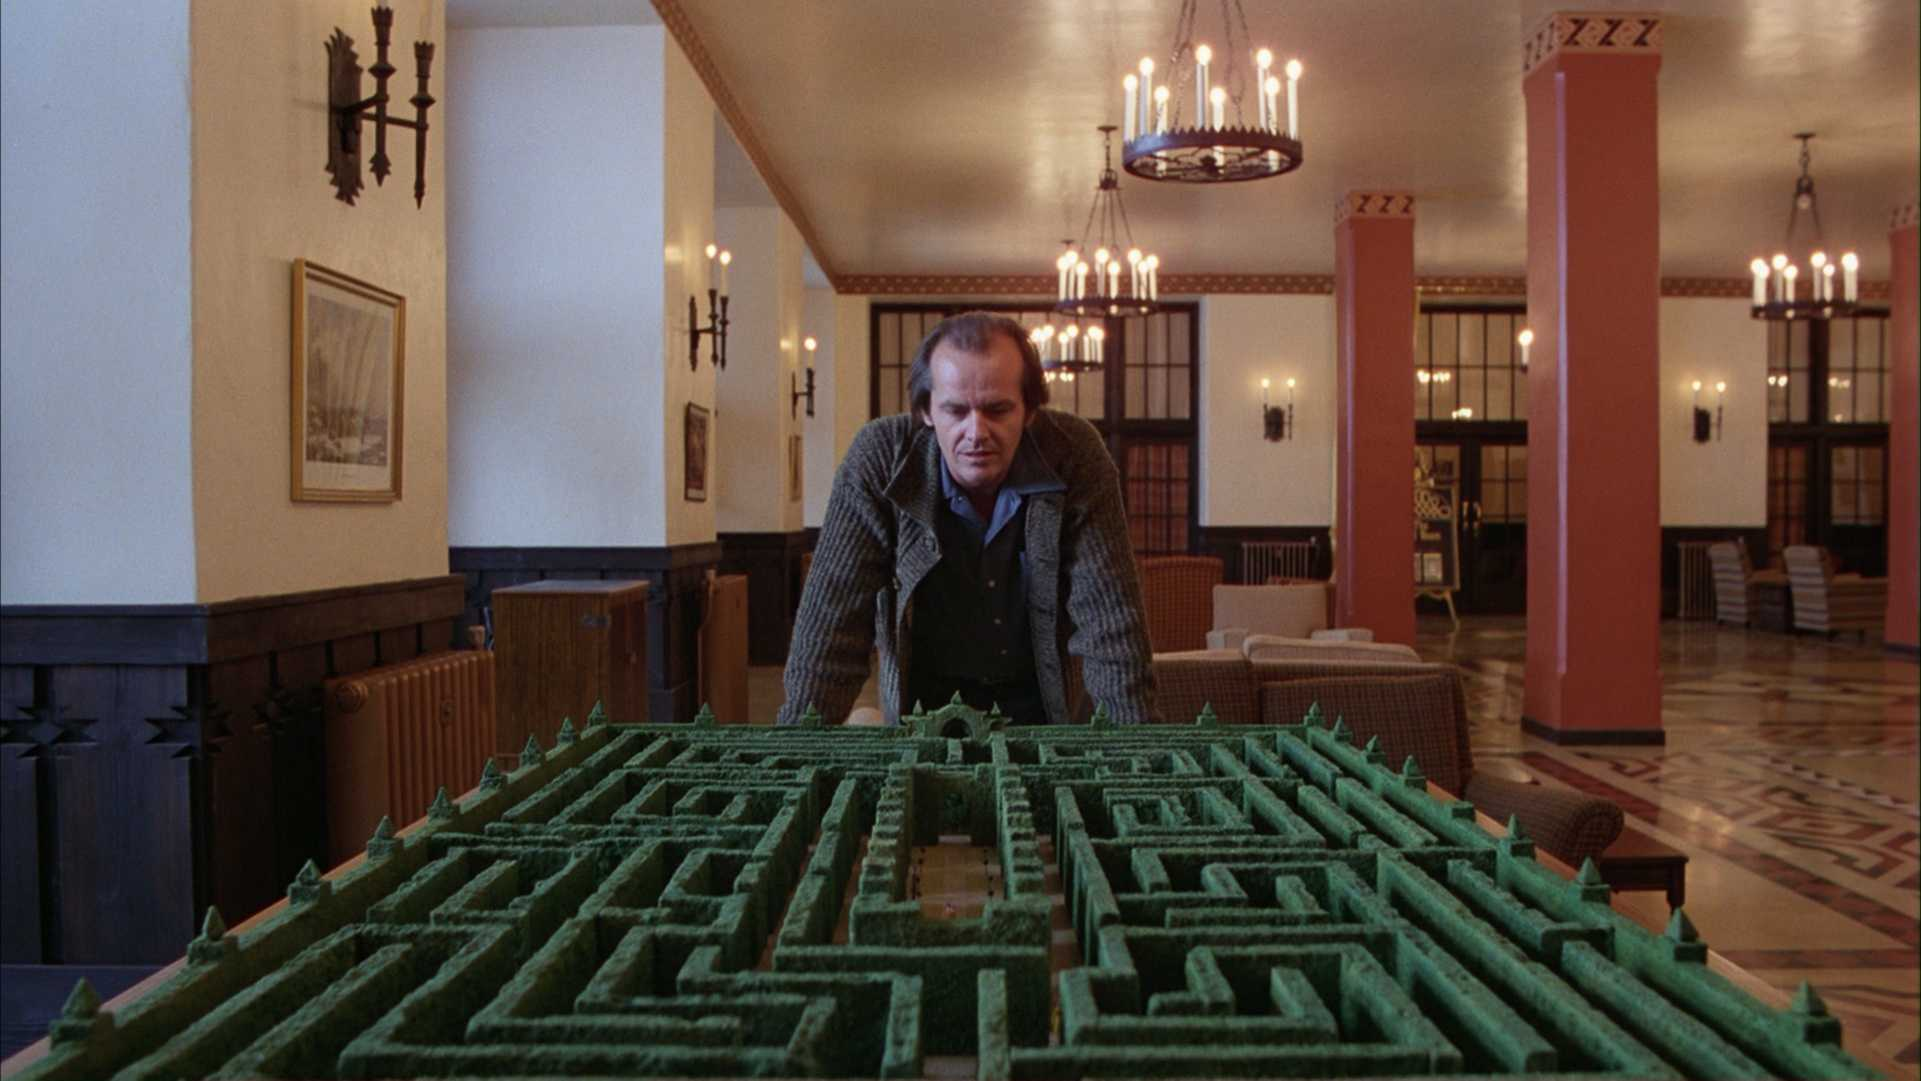 The miniature hedge maze of the Overlook Hotel in  The Shining  (1980)